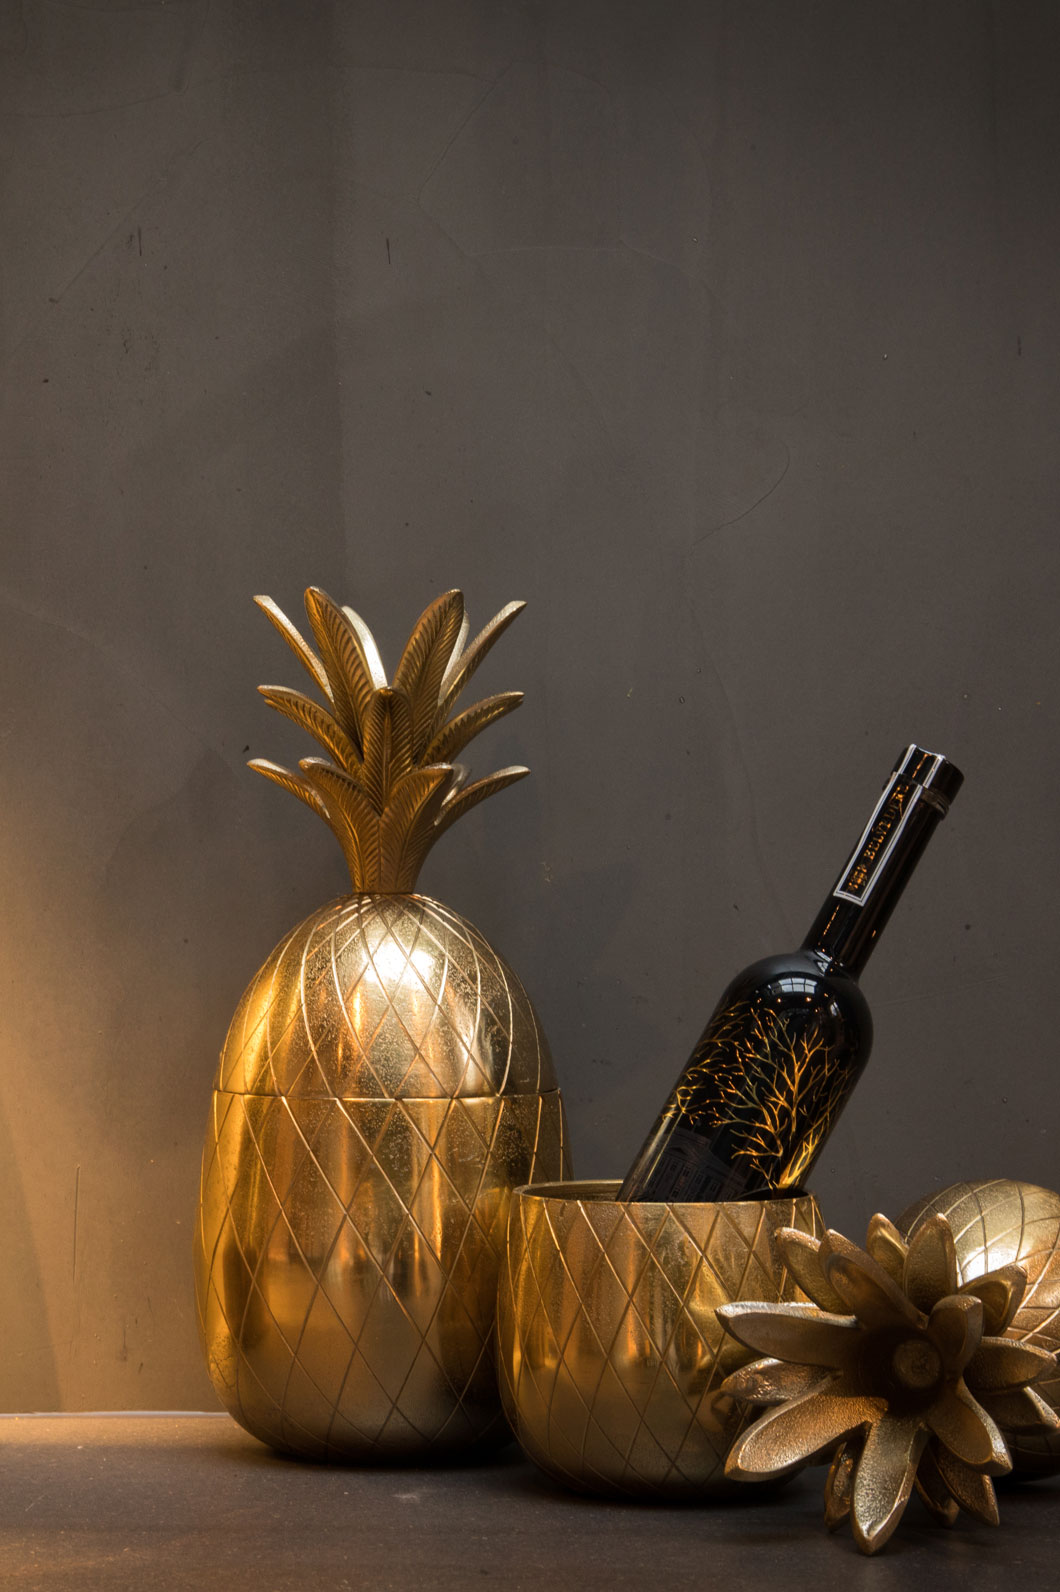 Golden pineapple-shaped drinks holders, one open containing a bottle of wine.